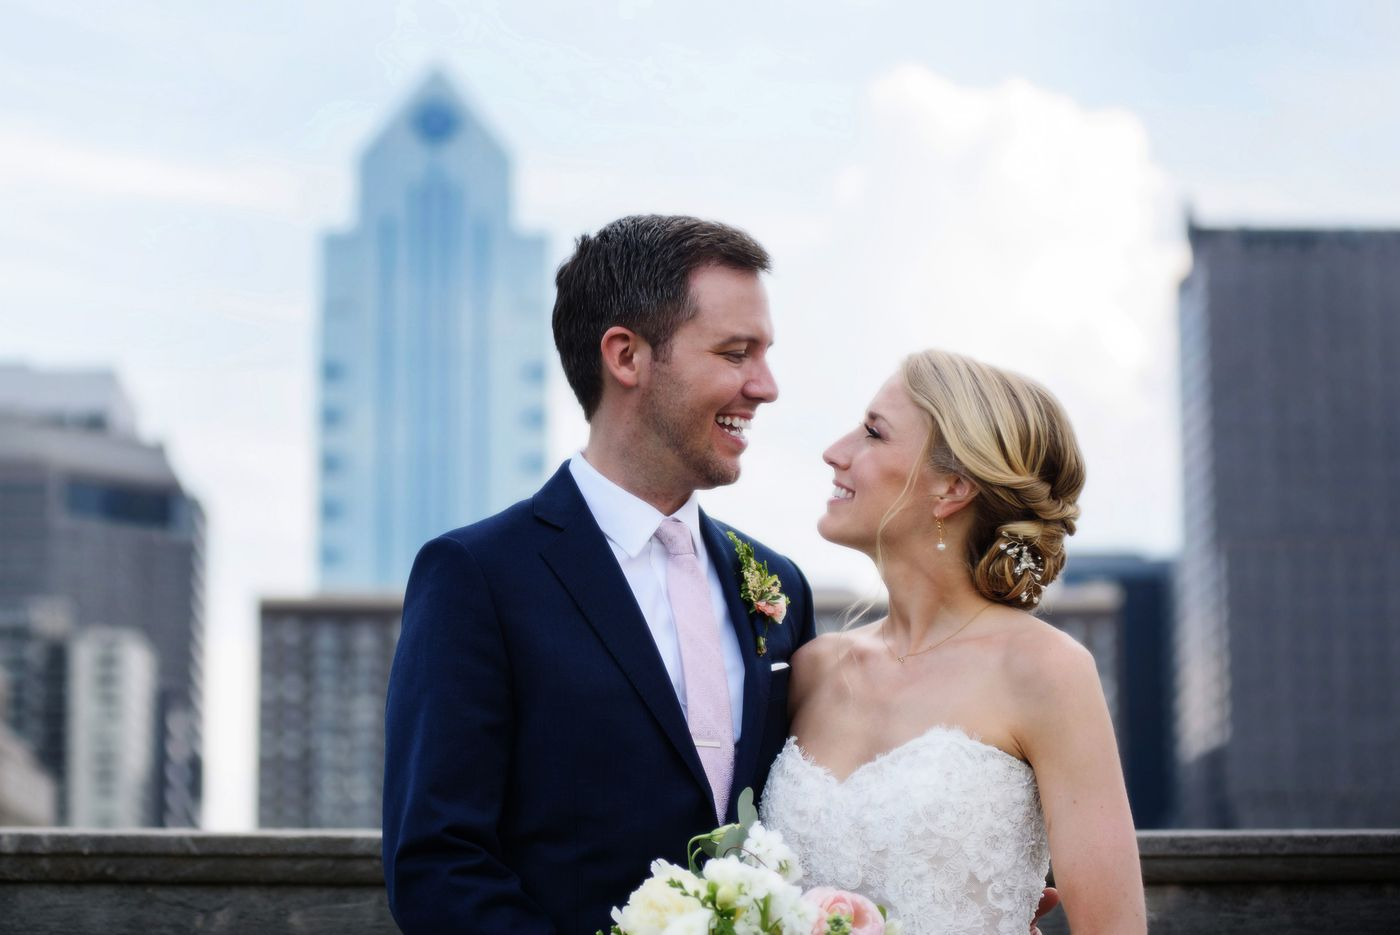 Philadelphia weddings: Lauren Miller and James Morse